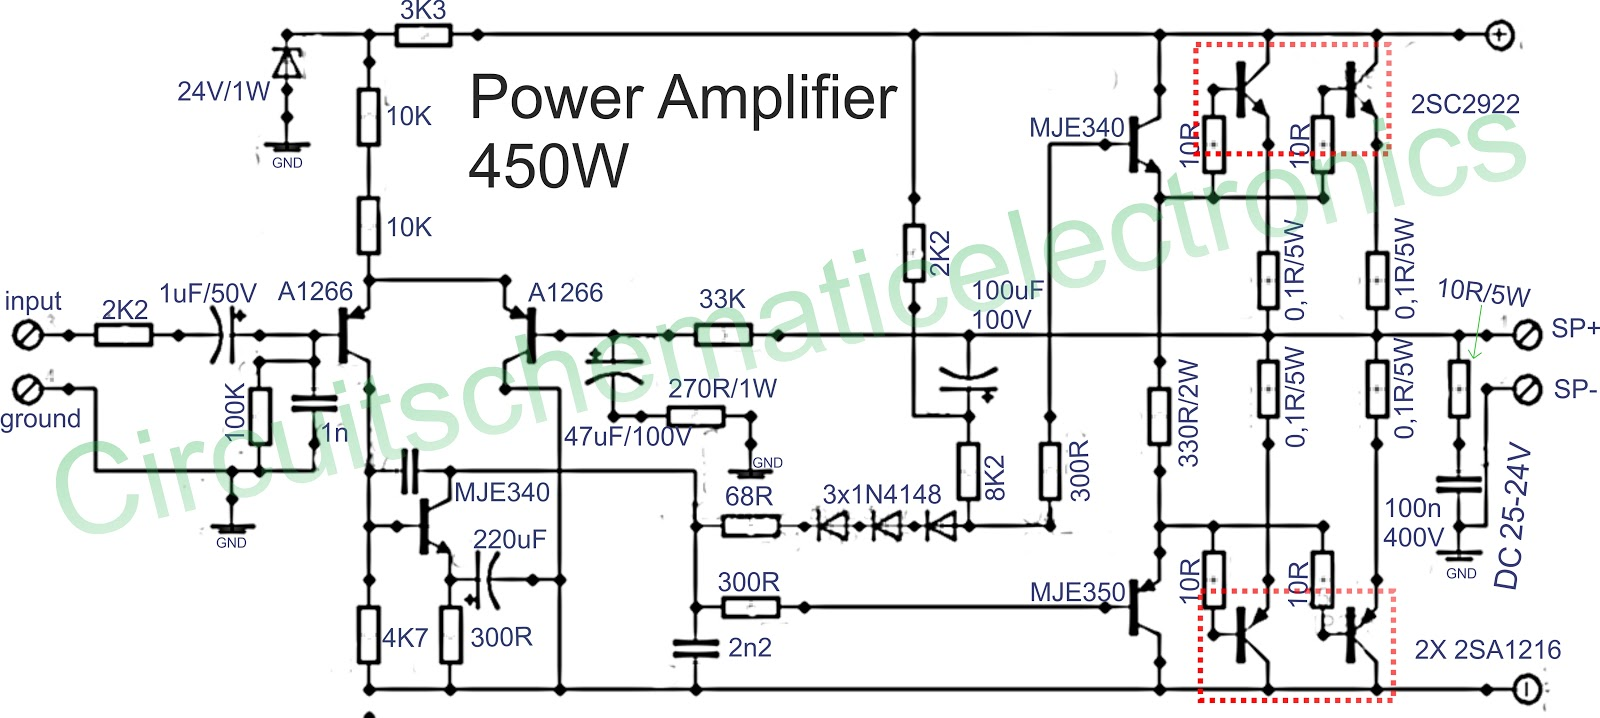 Power amplifier 450W with sanken Electronic Circuit